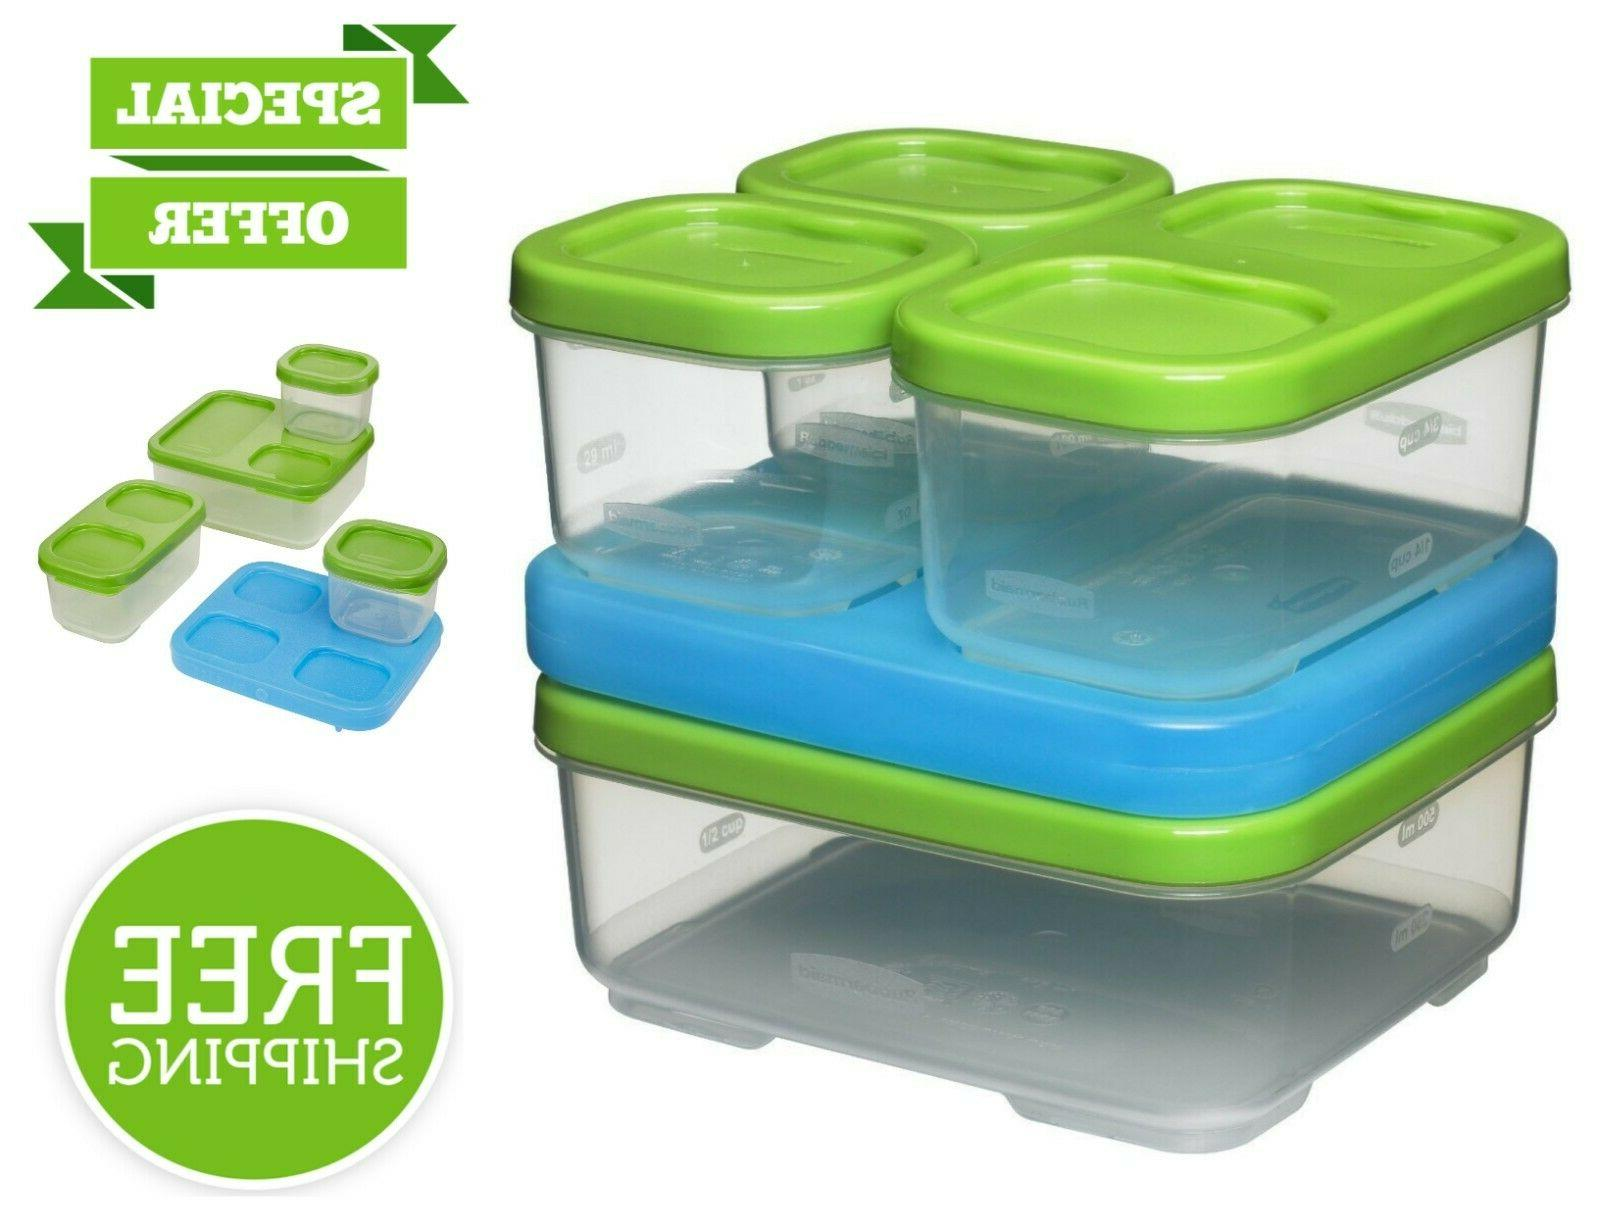 lunchblox sandwich kit durable lunch box food